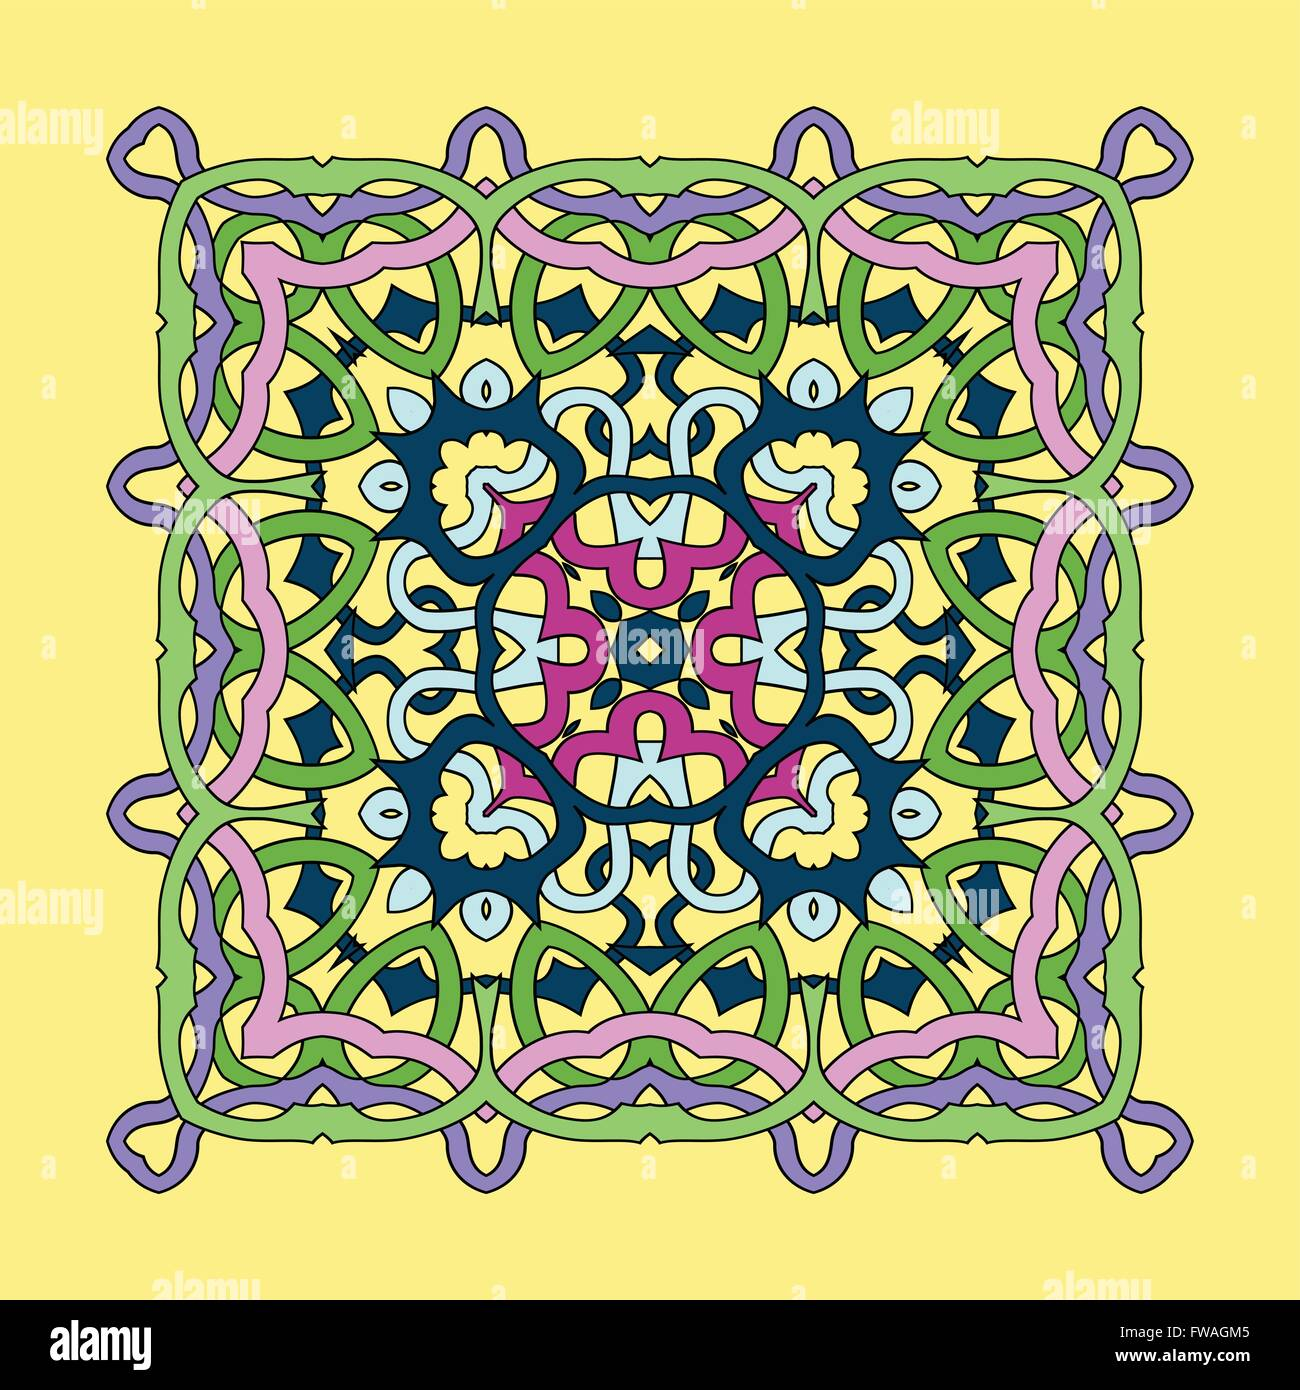 Mandala Square Stock Photos Amp Mandala Square Stock Images border=